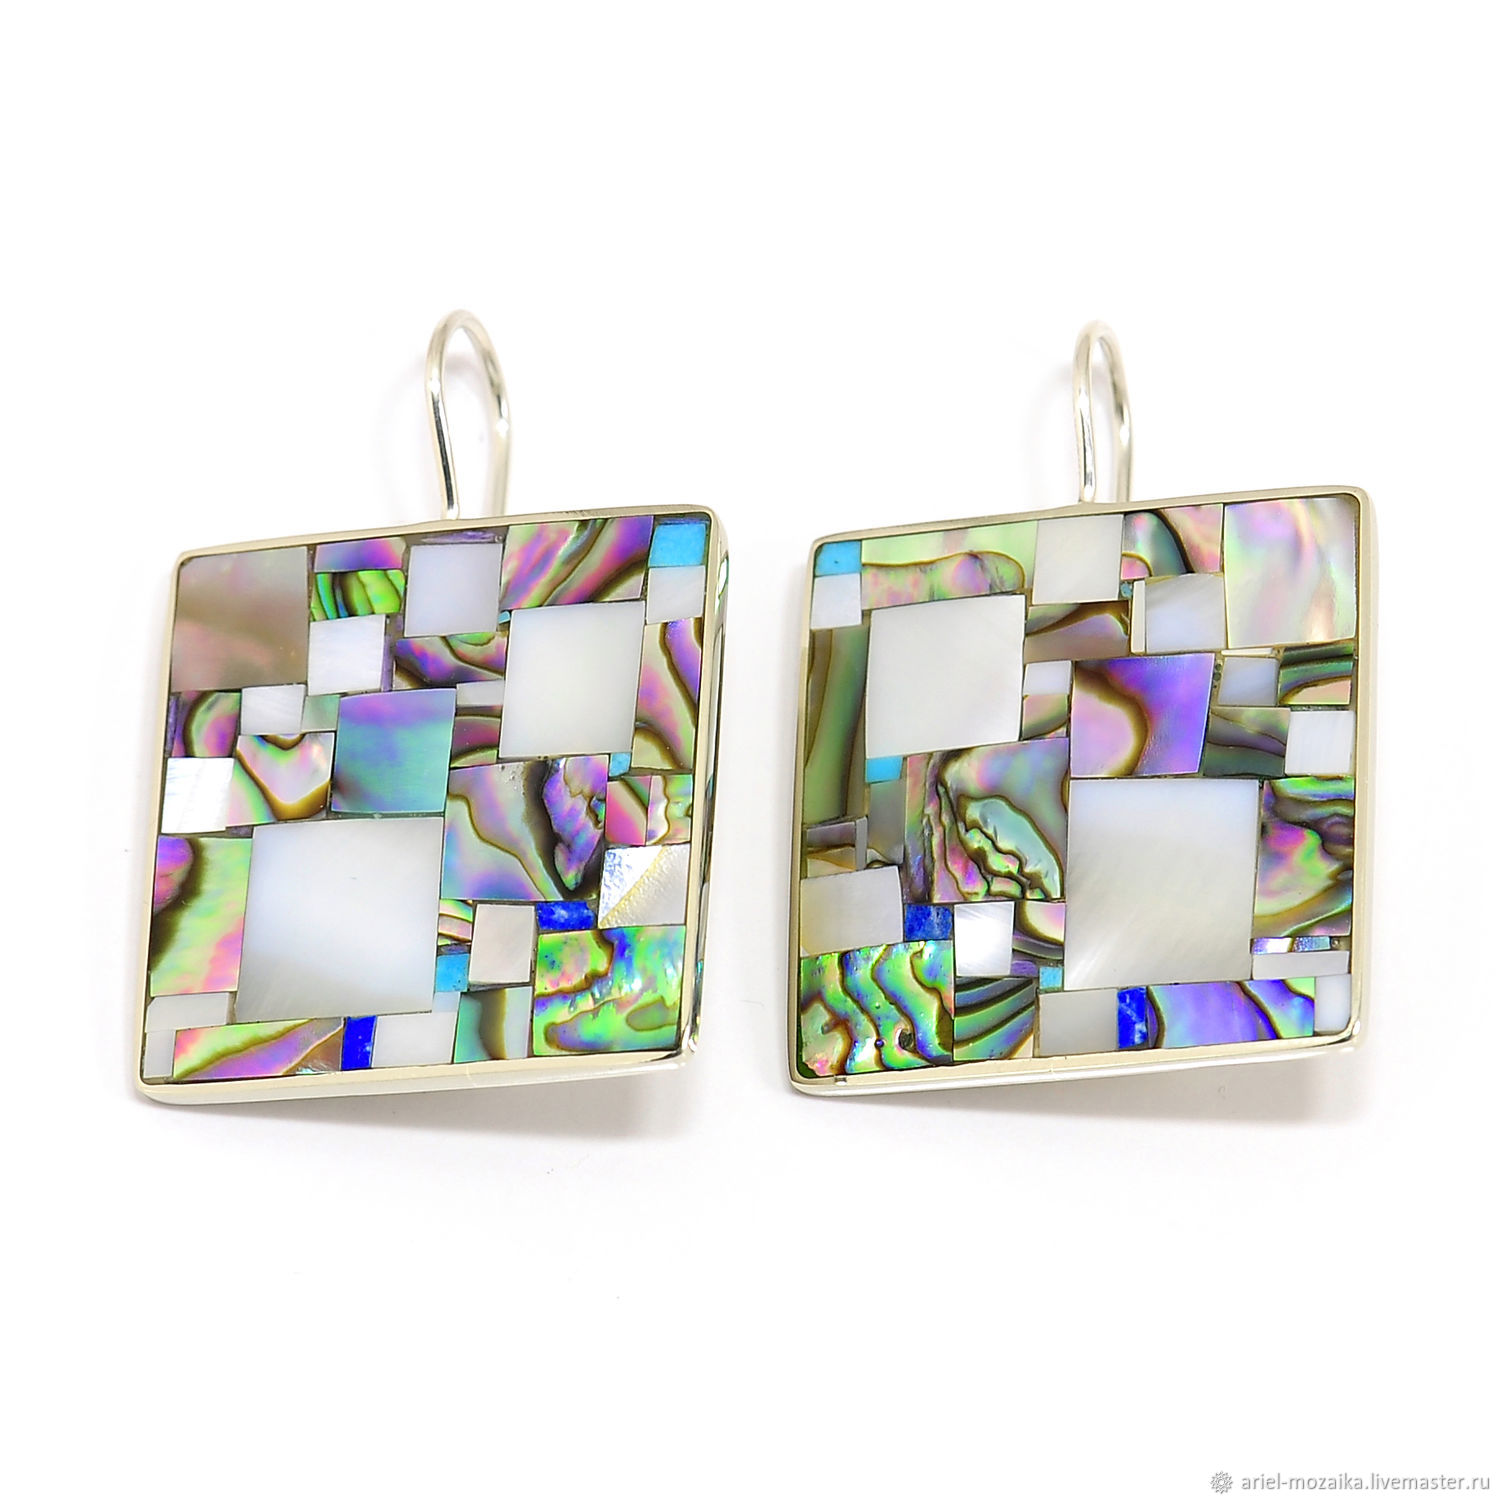 EARRINGS `Pearl mosaic` ARIEL - Alena - MOSAIC (Moscow) earring with mother of pearl Earrings with turquoise Earrings with lapis lazuli Earrings large